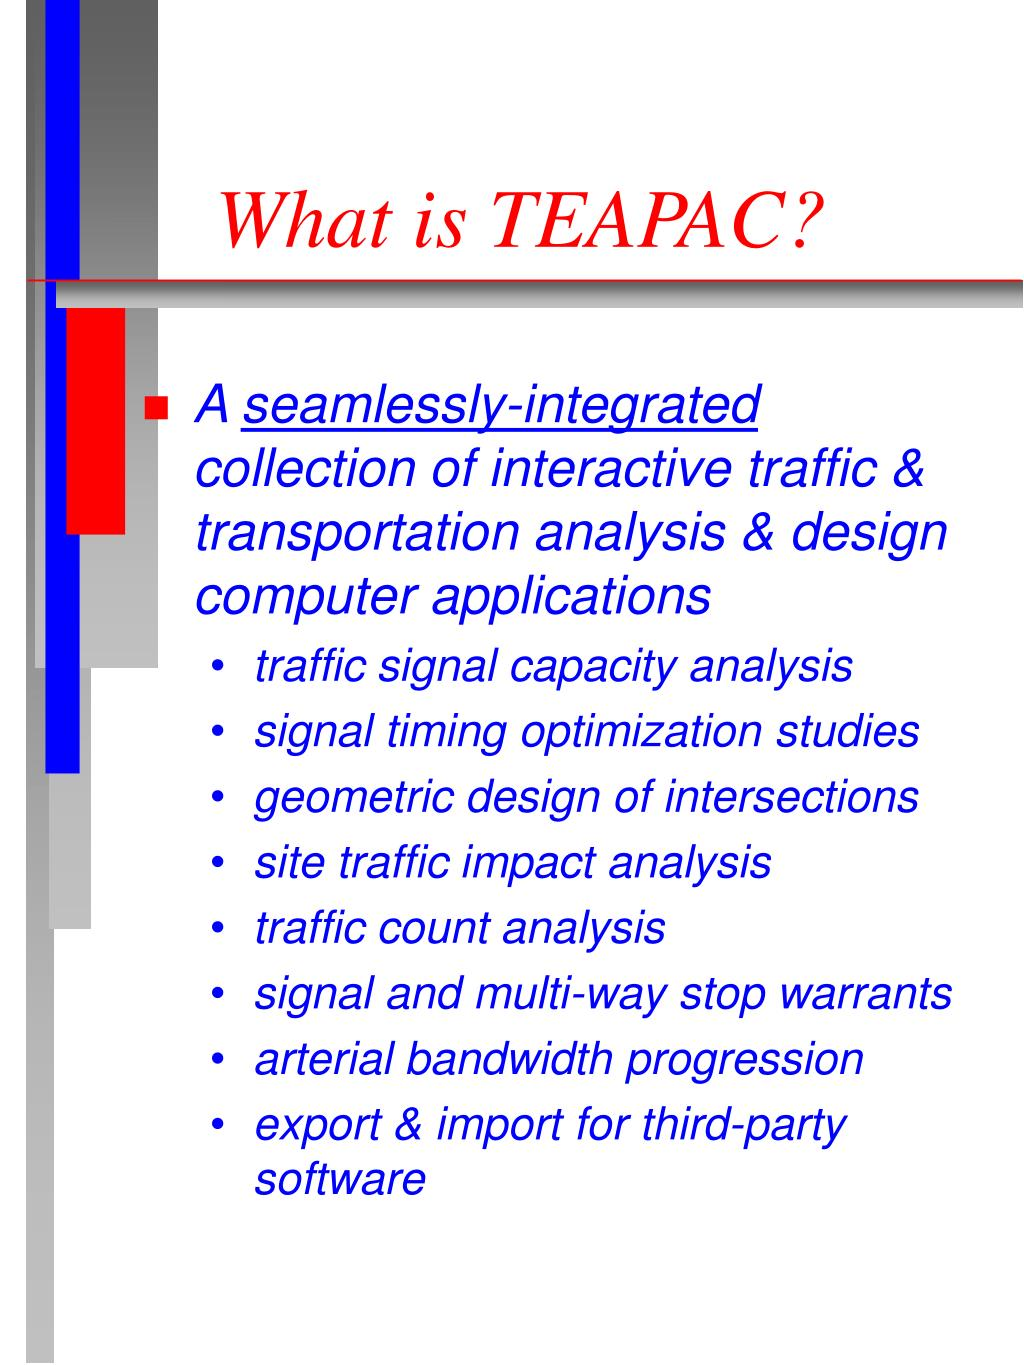 What is TEAPAC?